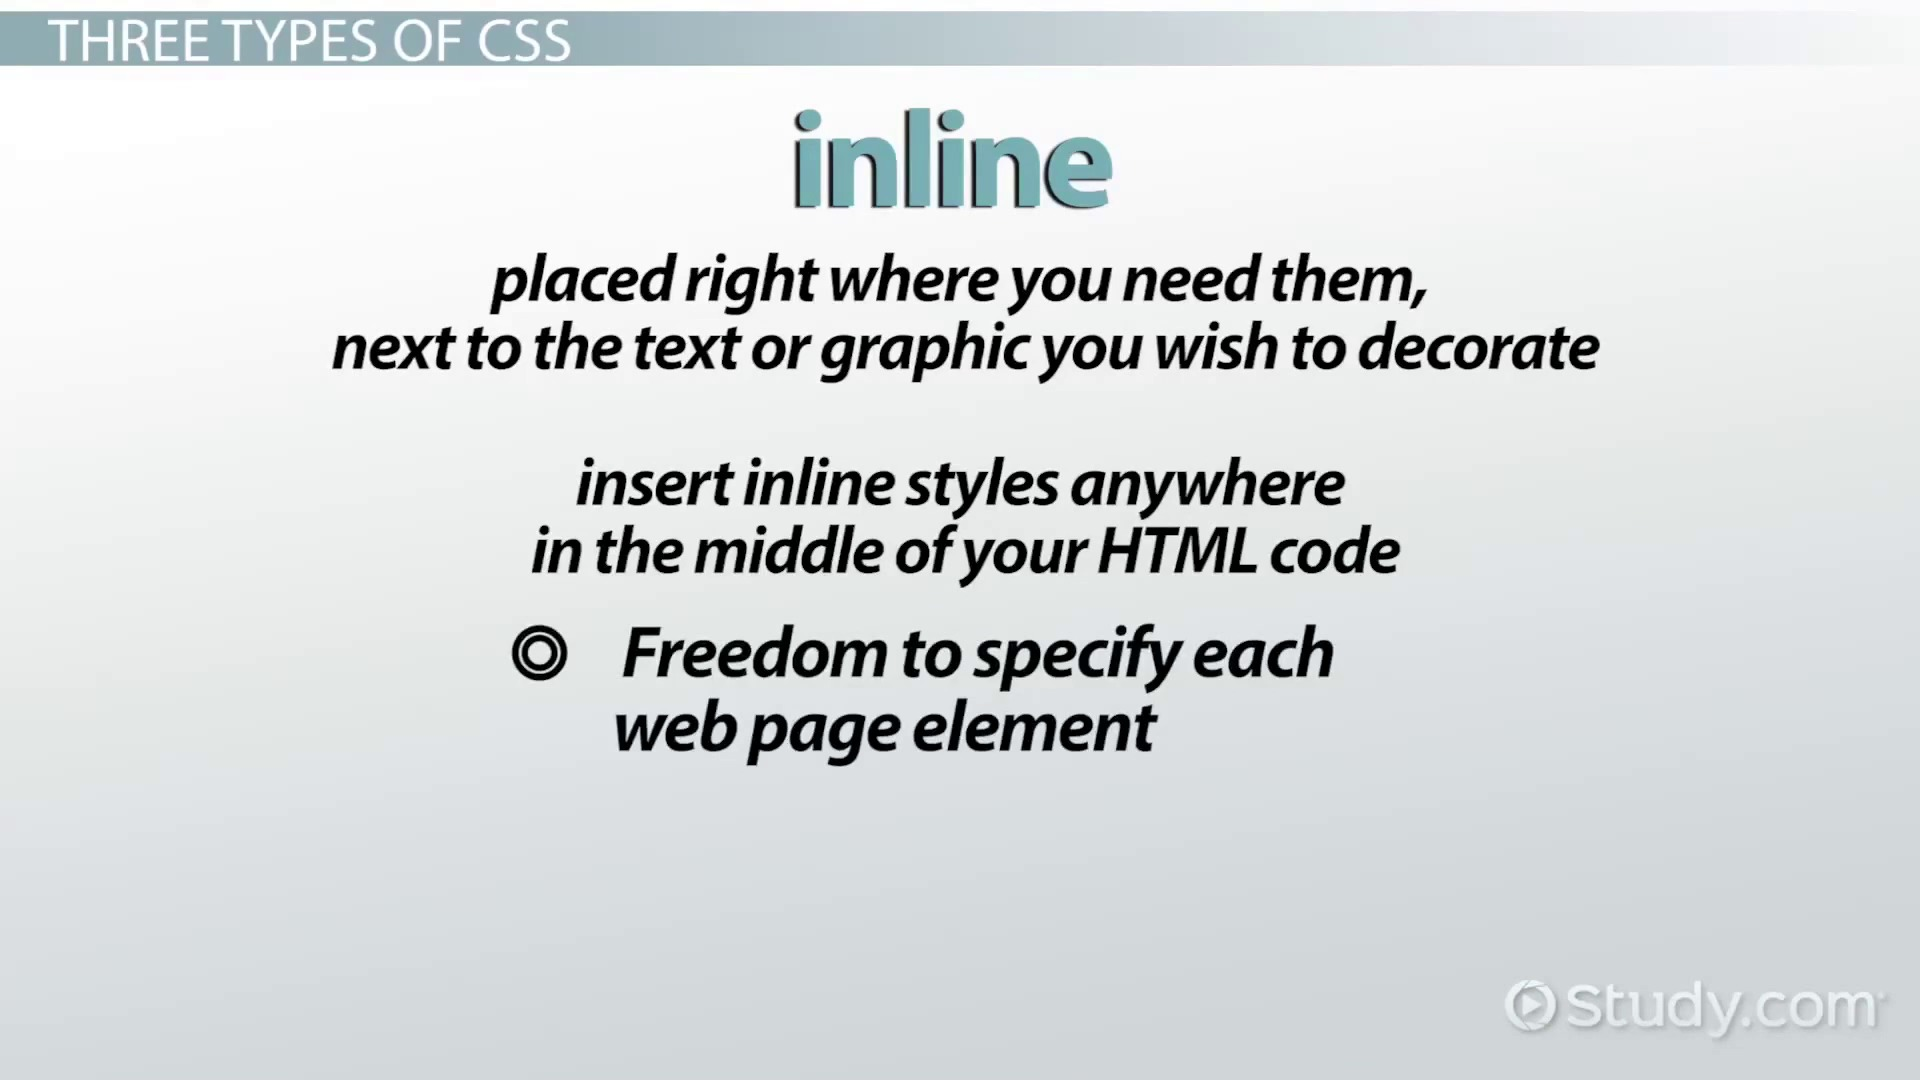 Cascading style sheets css definition types examples video lesson transcript study com